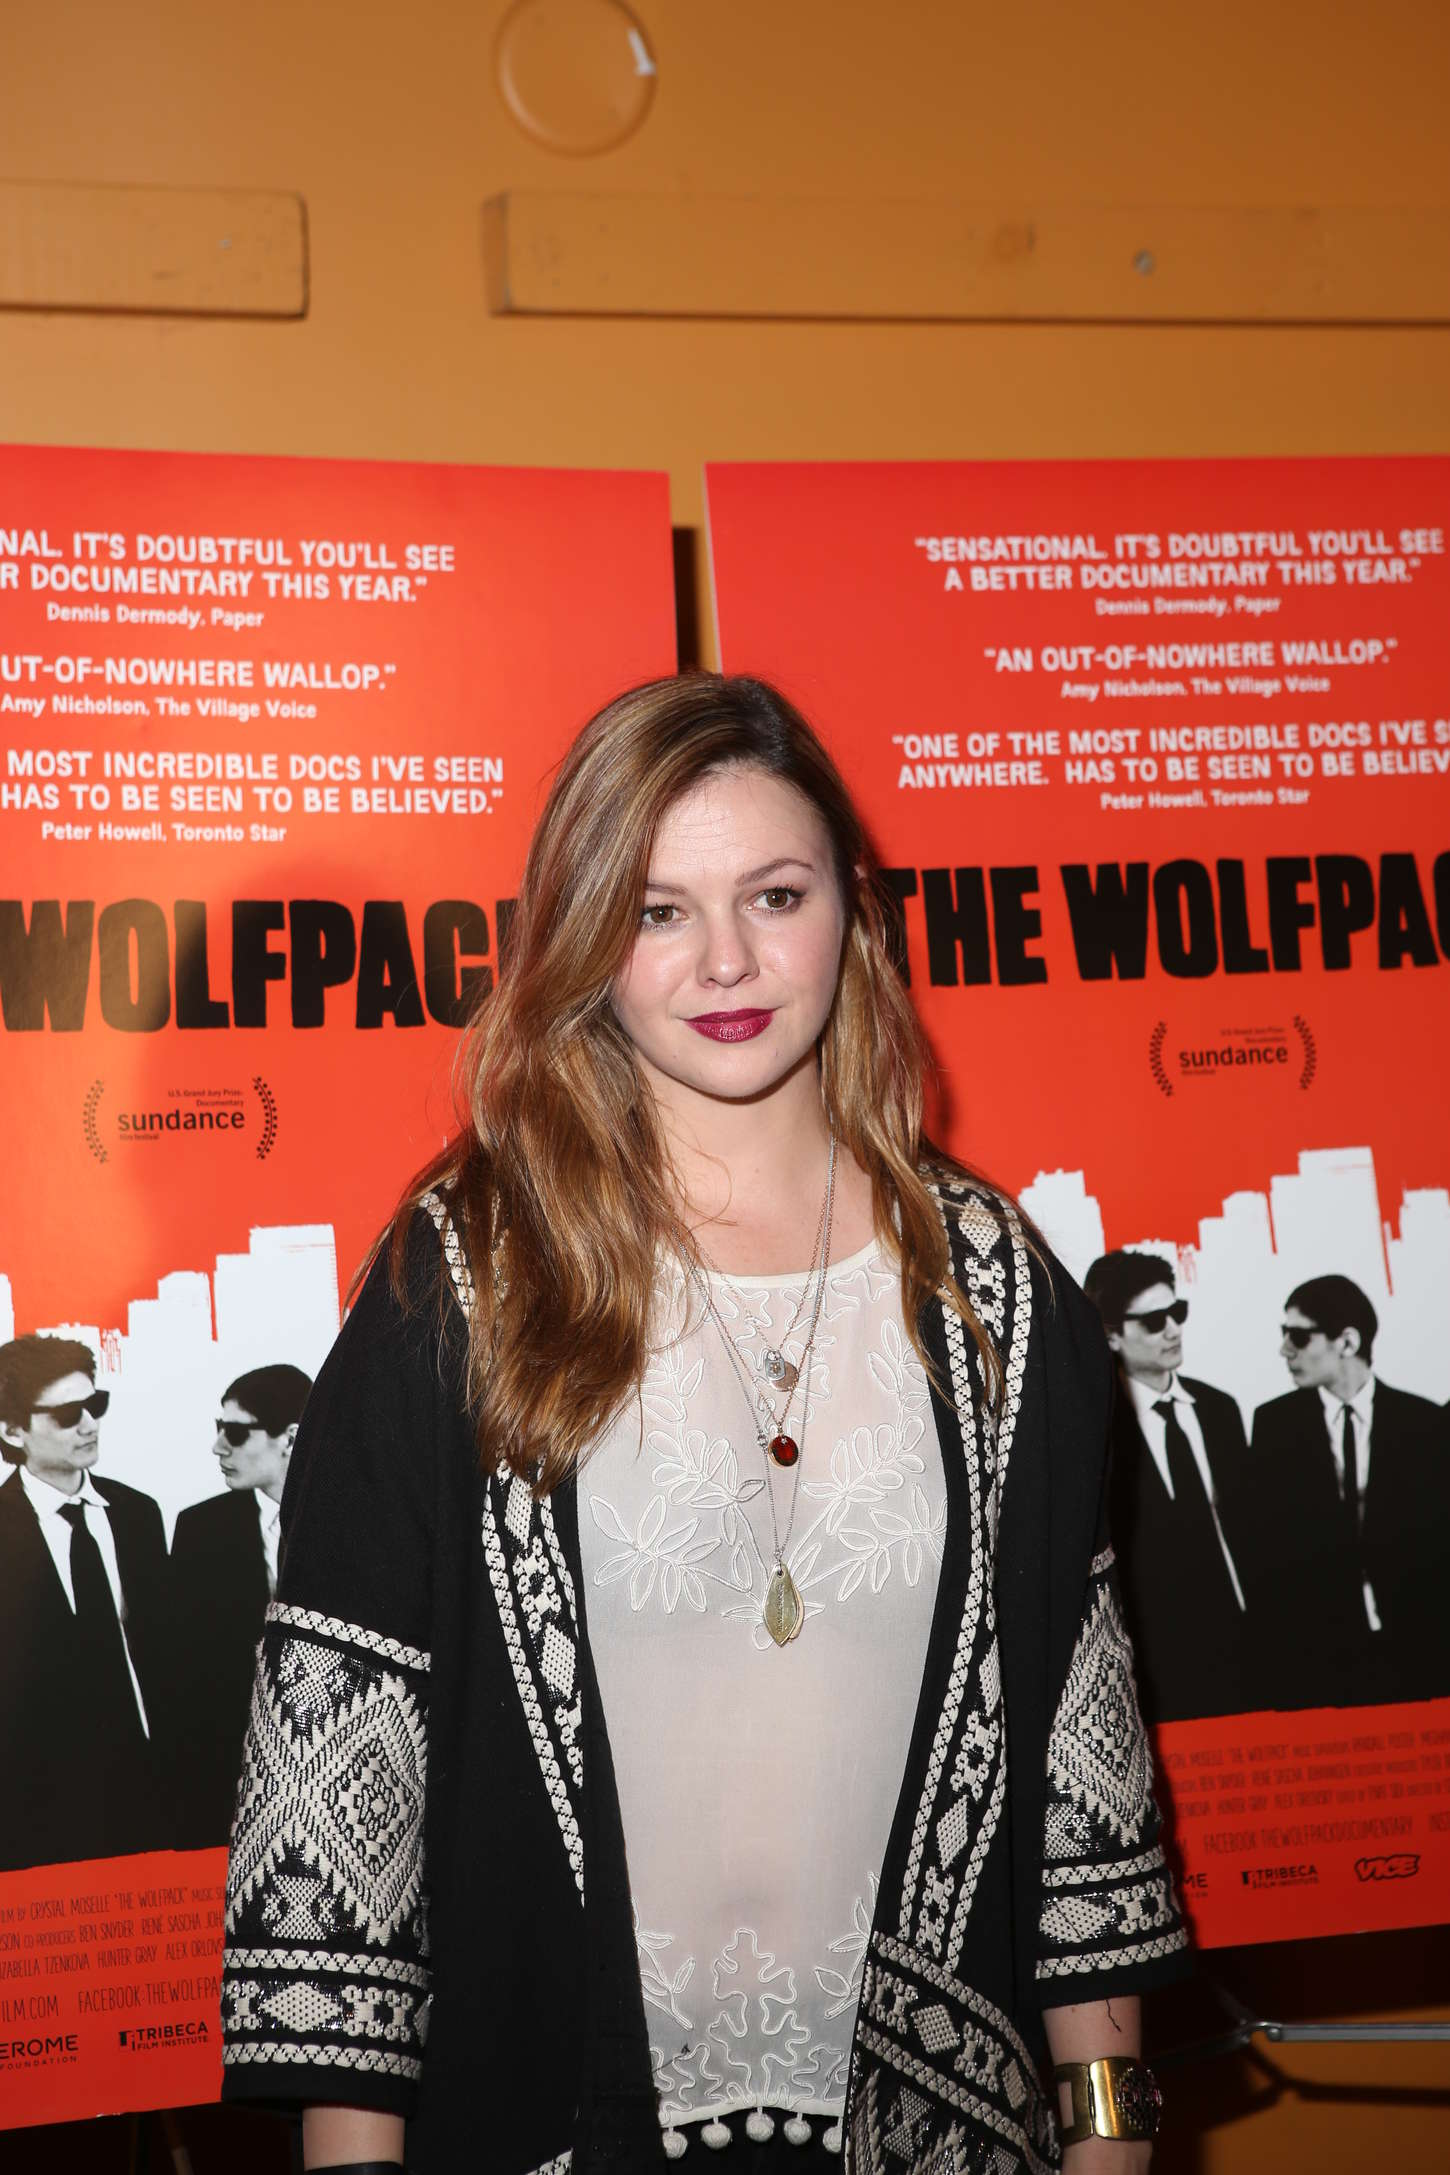 Amber Tamblyn The Wolfpack Premiere in New York